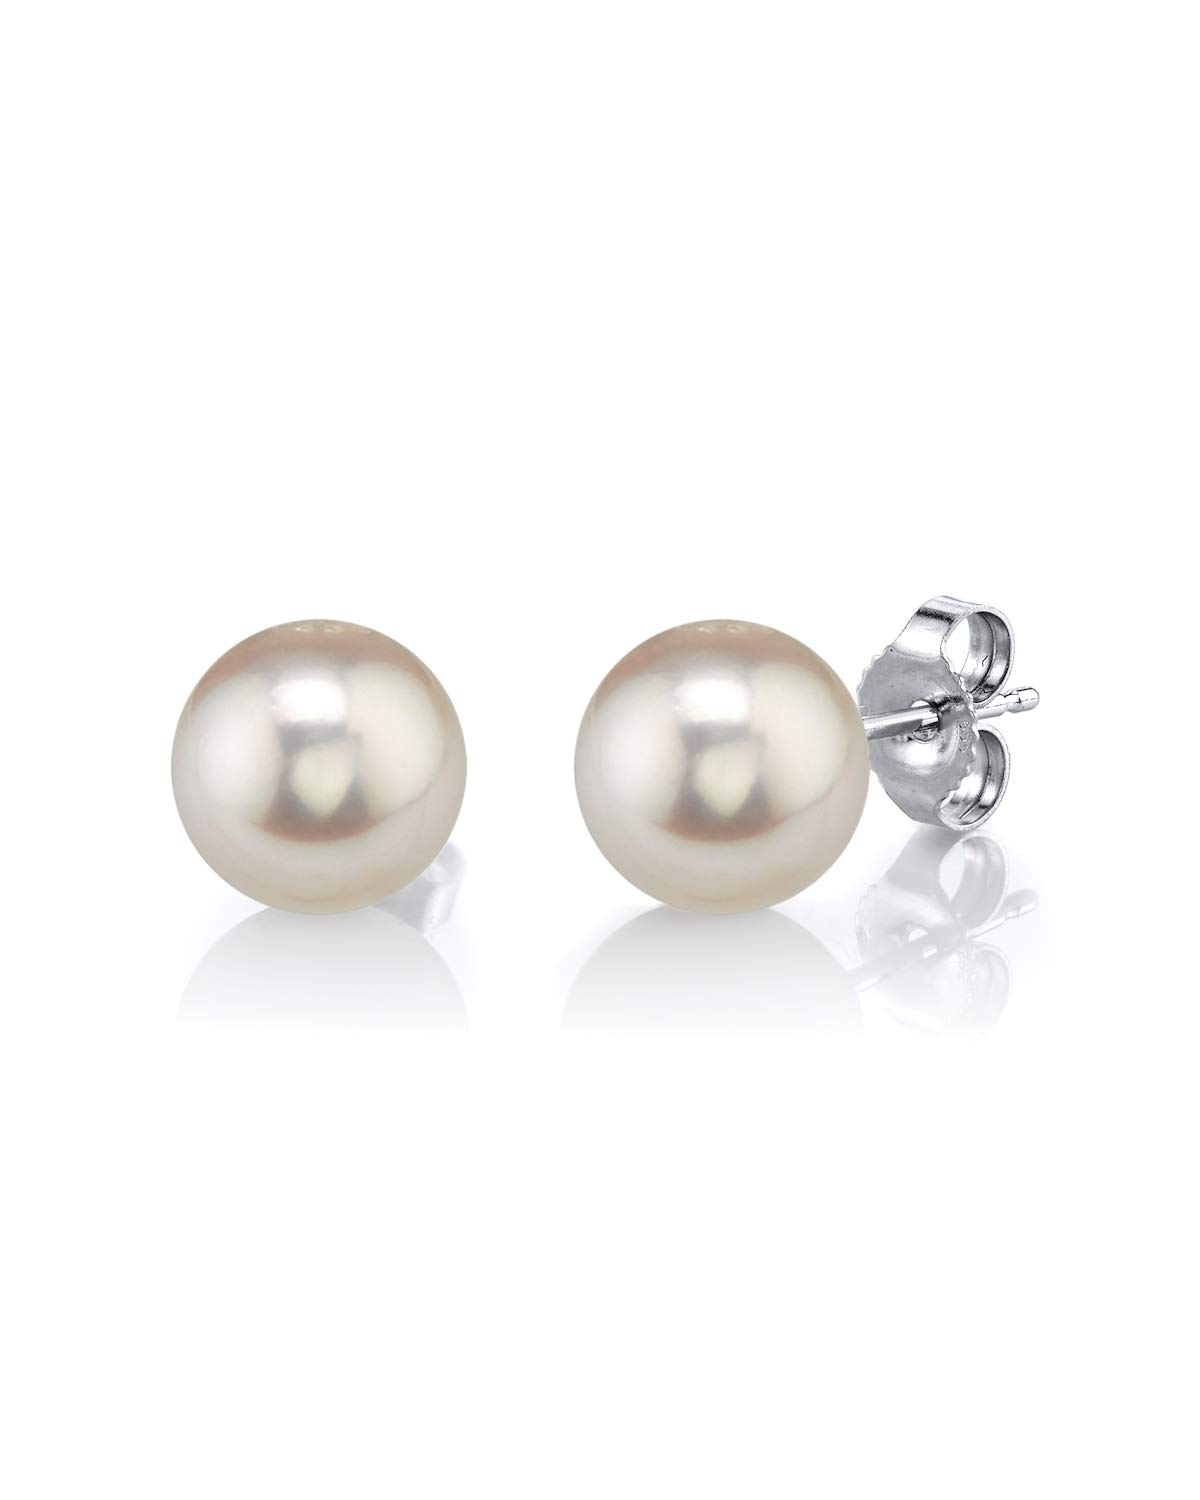 THE-PEARL-SOURCE-14K-Gold-Round-White-Freshwater-Cultured-Pearl-Stud-Earrings-for-Women